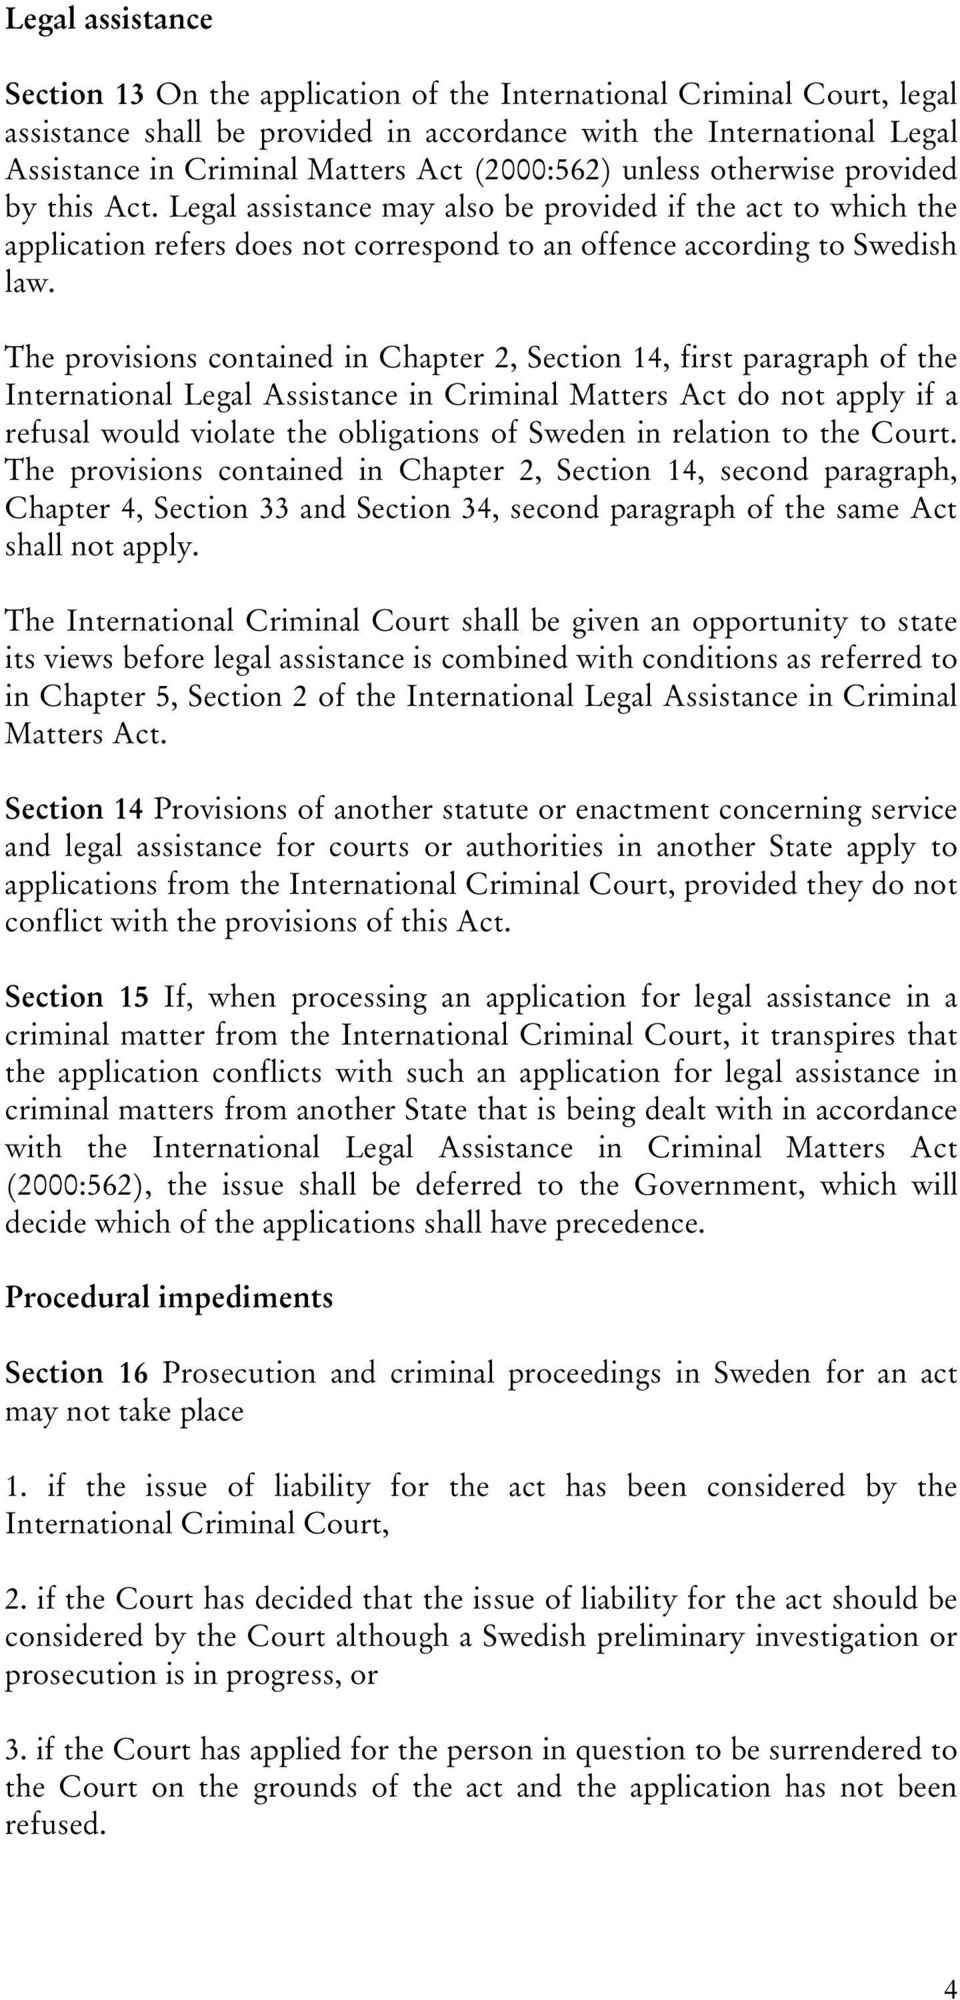 The provisions contained in Chapter 2, Section 14, first paragraph of the International Legal Assistance in Criminal Matters Act do not apply if a refusal would violate the obligations of Sweden in